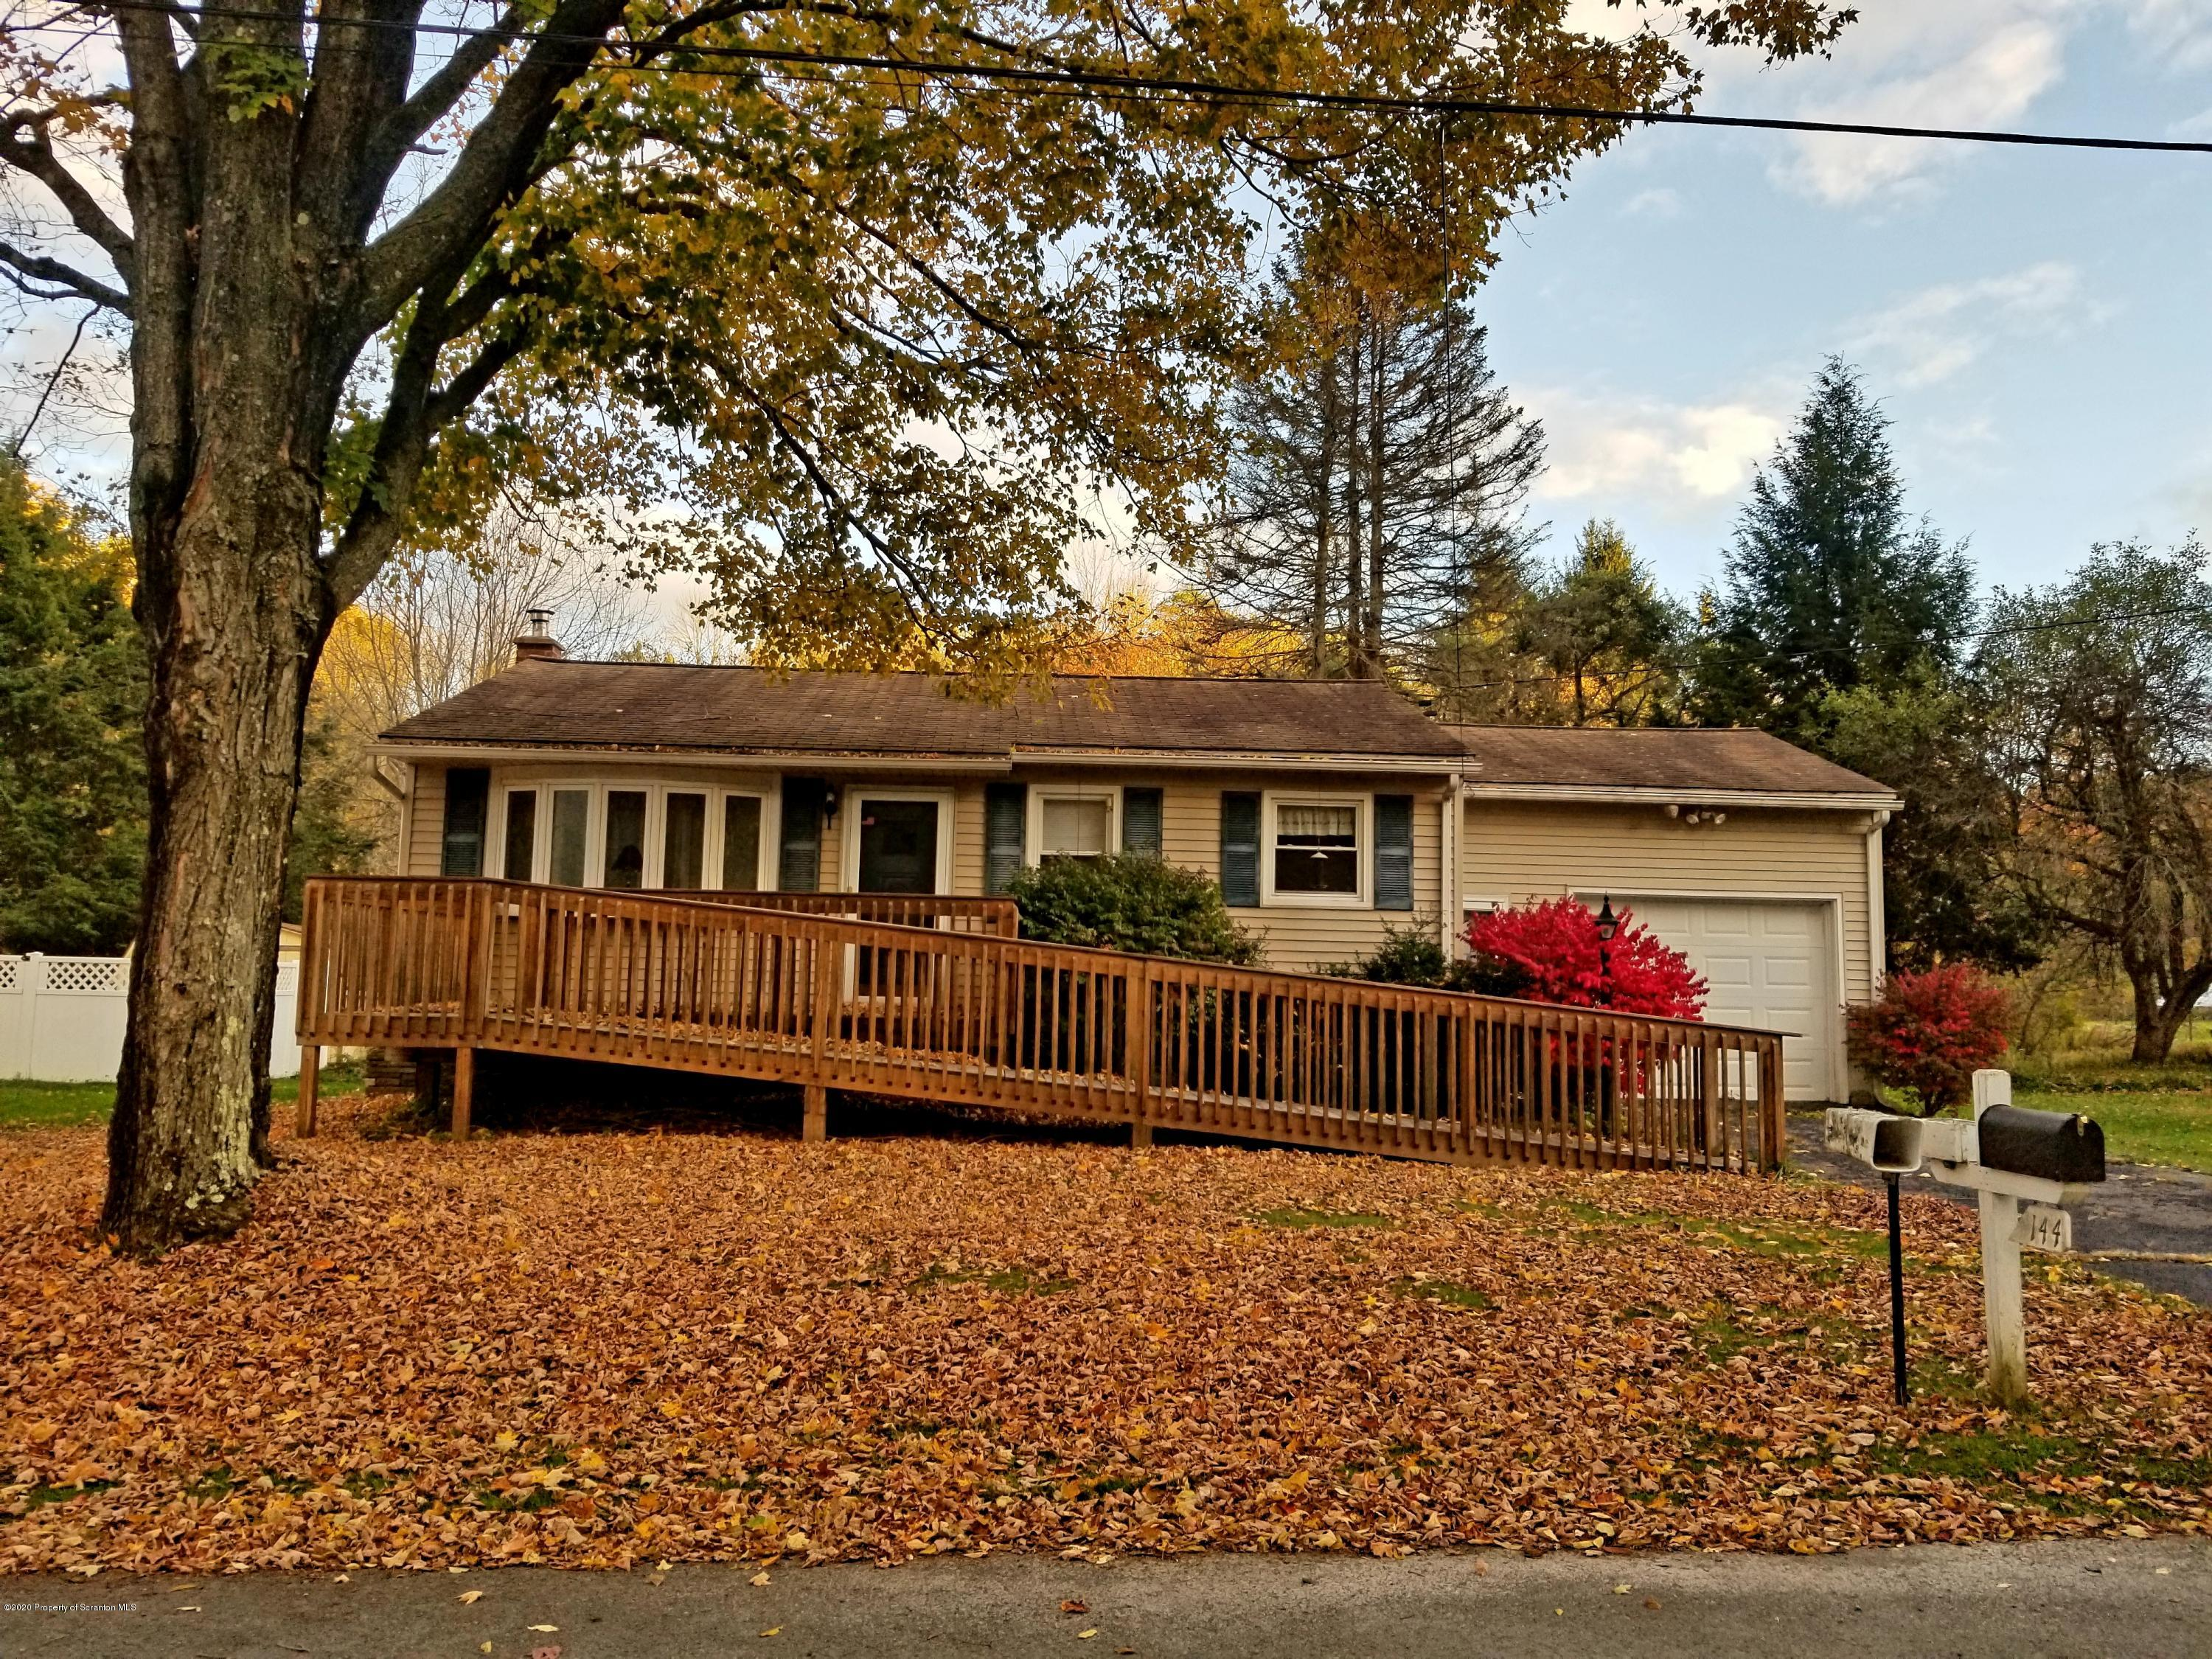 144 Water St, Thompson, Pennsylvania 18465, 2 Bedrooms Bedrooms, 6 Rooms Rooms,1 BathroomBathrooms,Single Family,For Sale,Water,20-4331